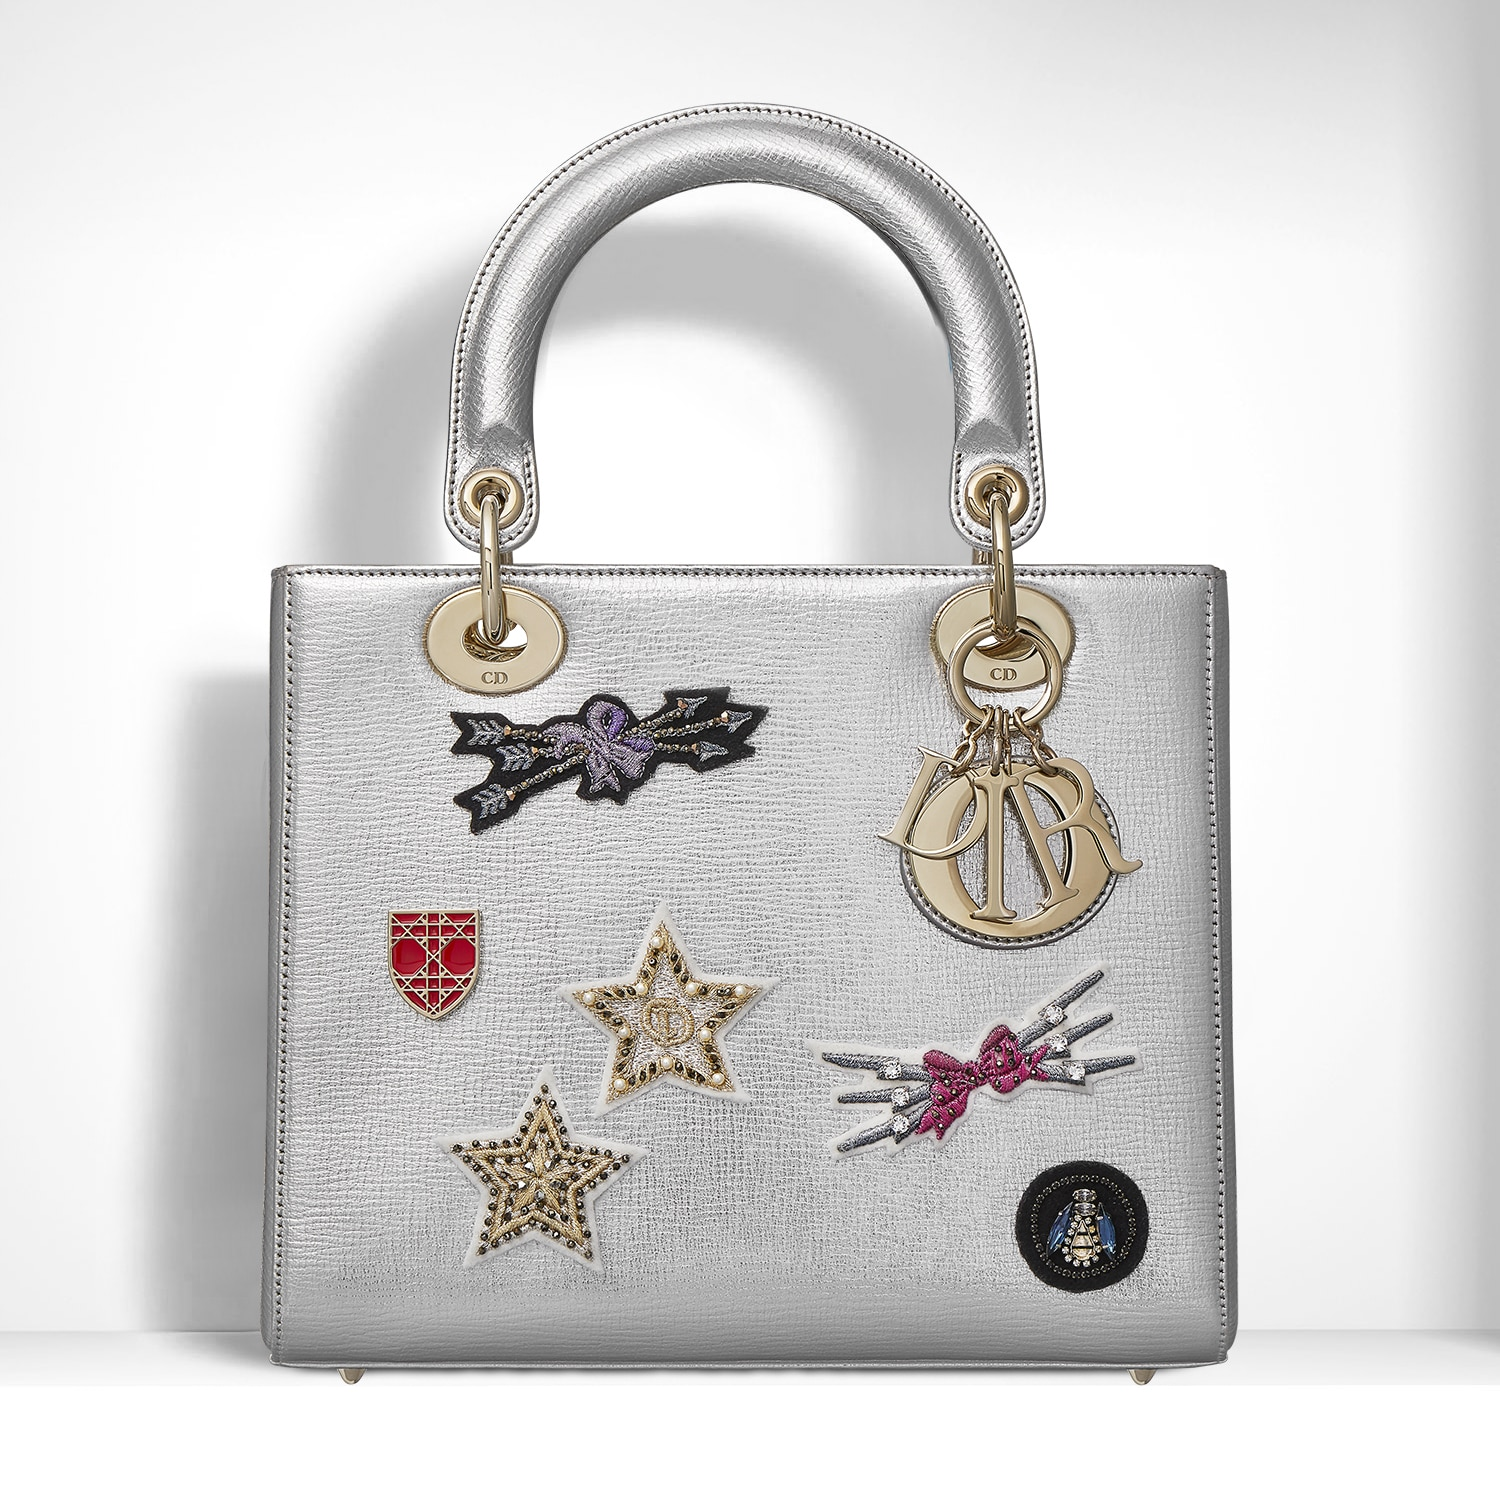 5707ad46af96 Dior Metallic Grained Leather Embroidered with Badges Lady Dior Bag